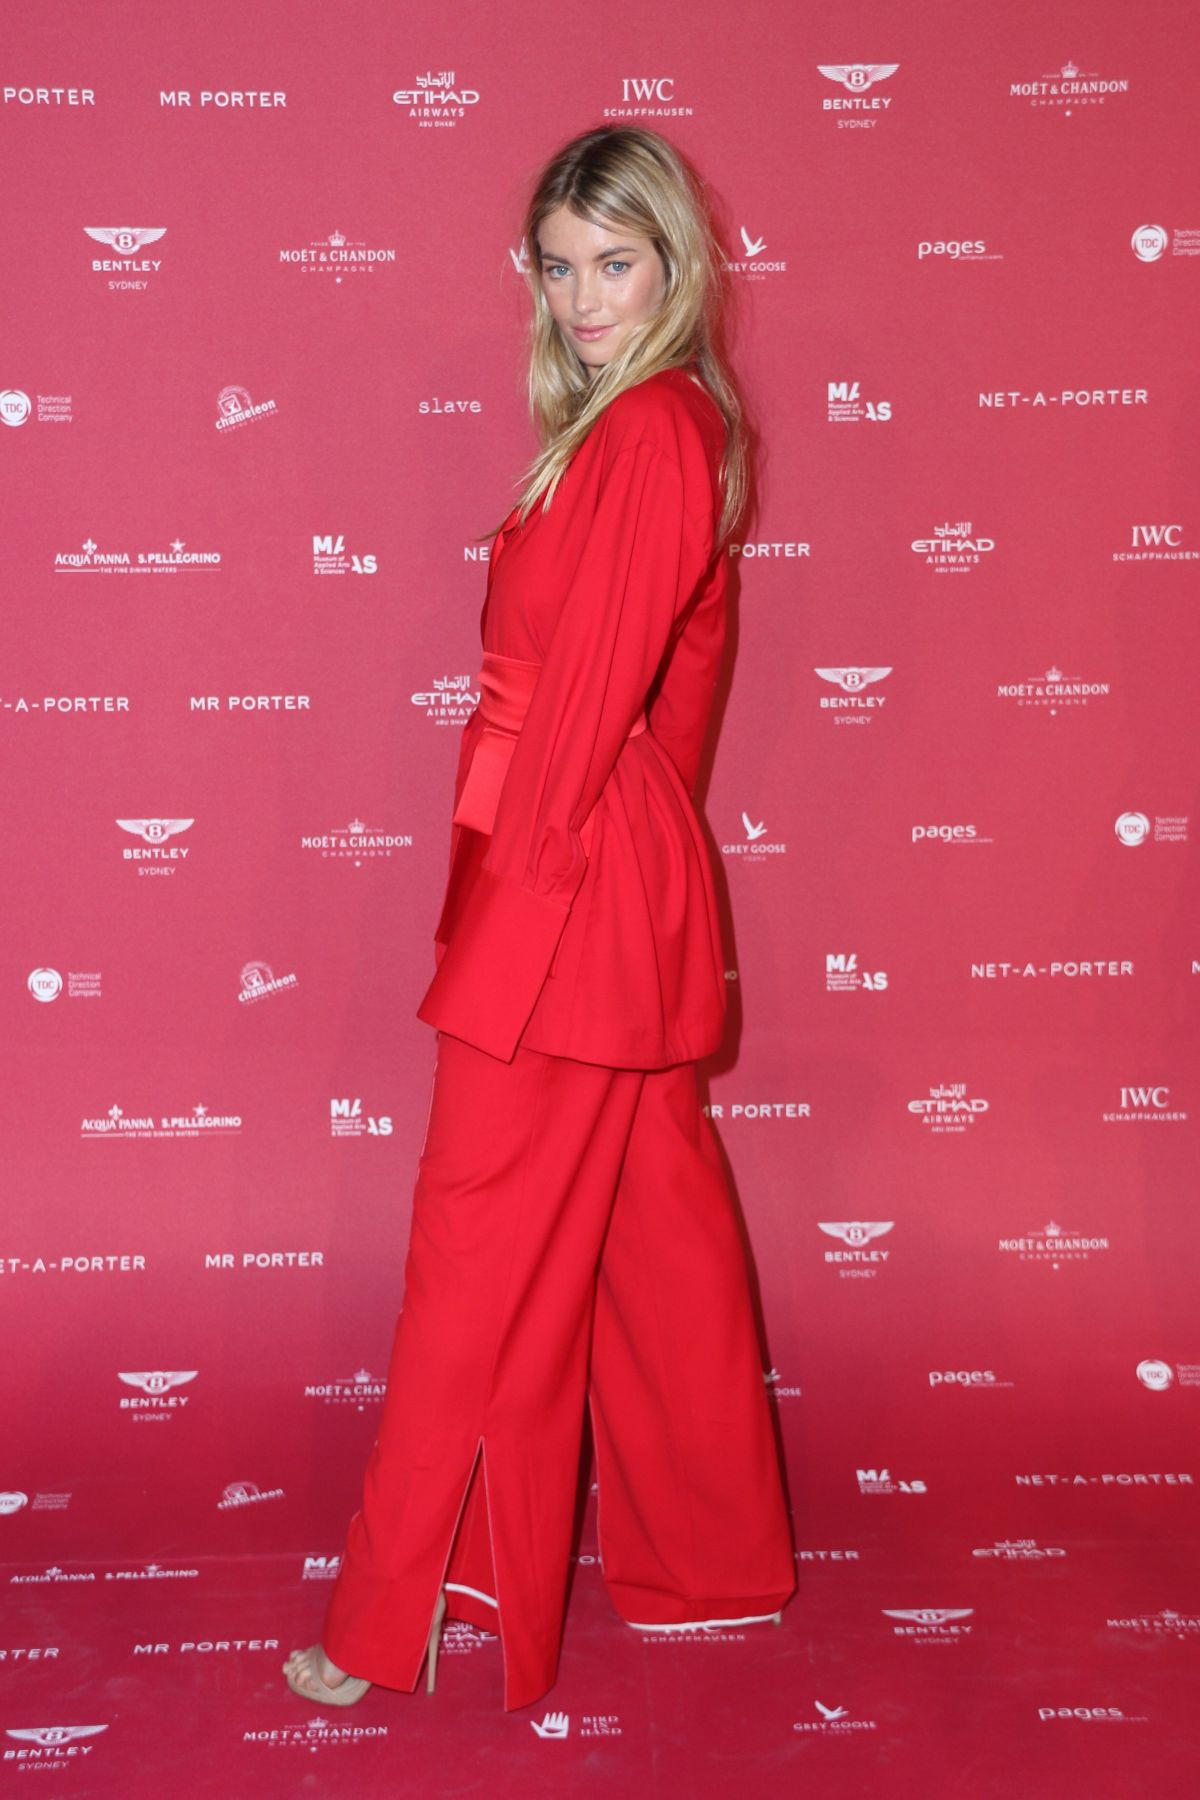 Elyse Taylor At Inaugural Museum Of Applied Arts And Sciences Fashion Ball In Sydney Celebzz